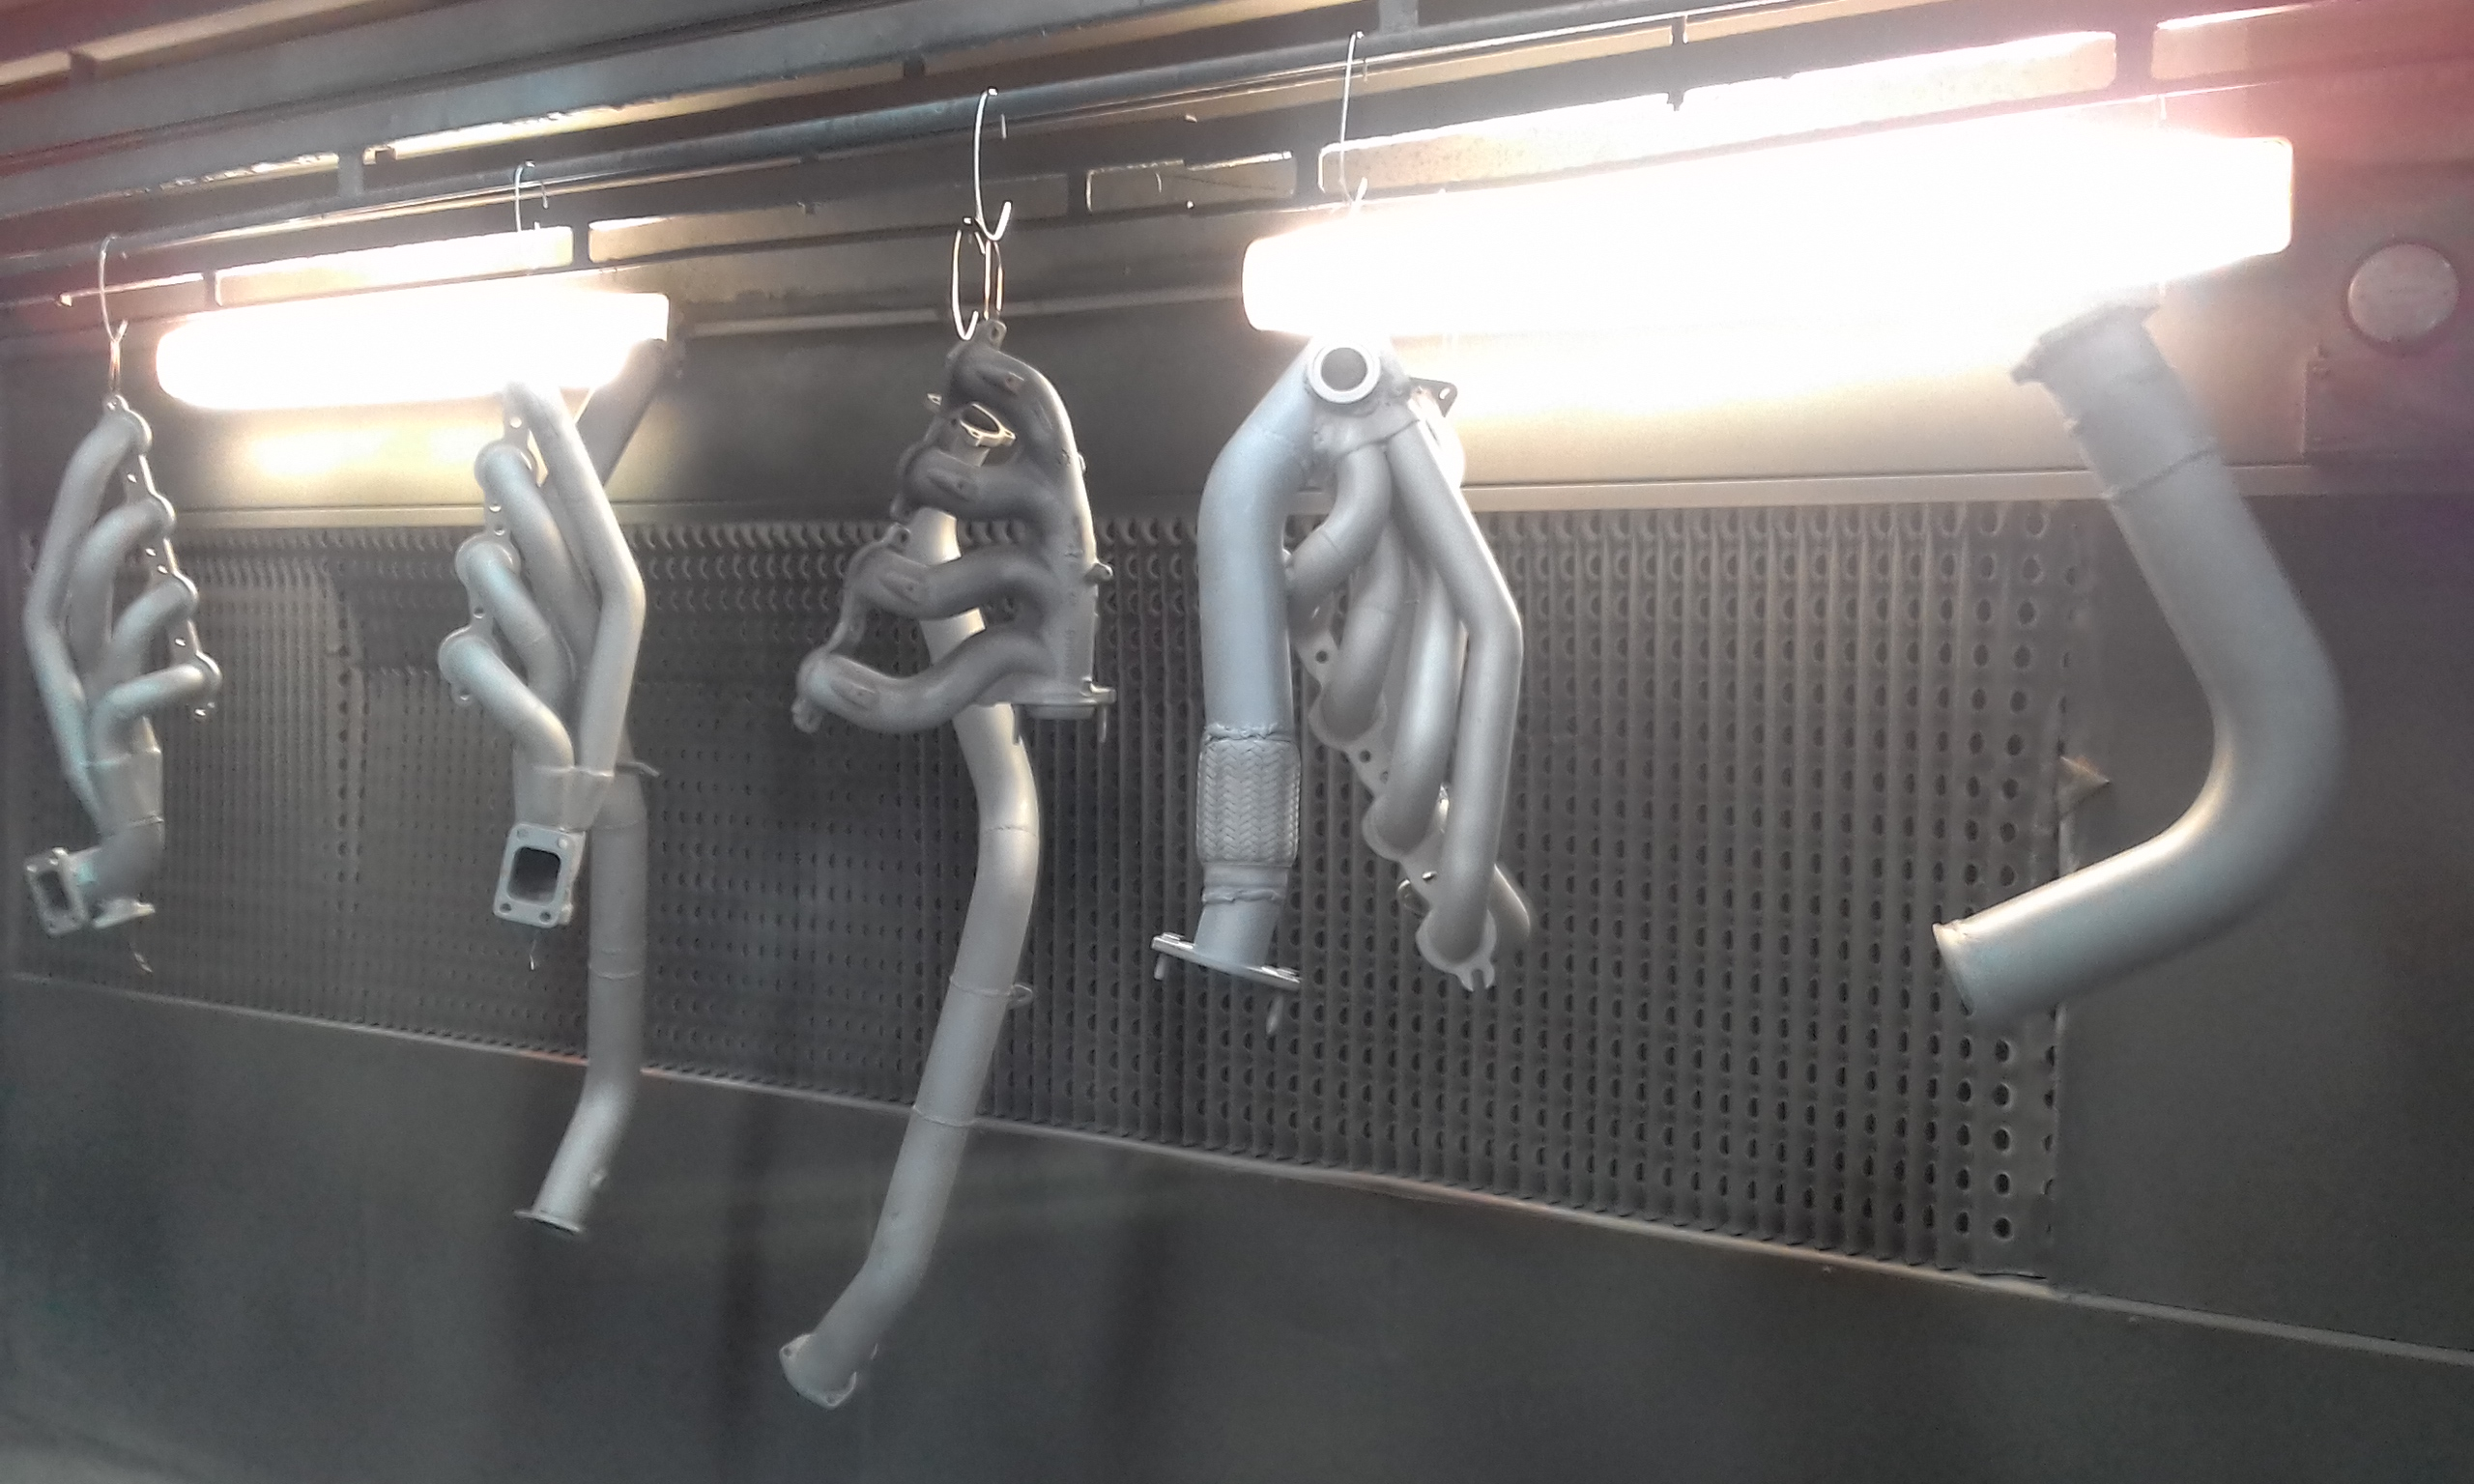 Ceramic coating prep - Parts hung for outgassing